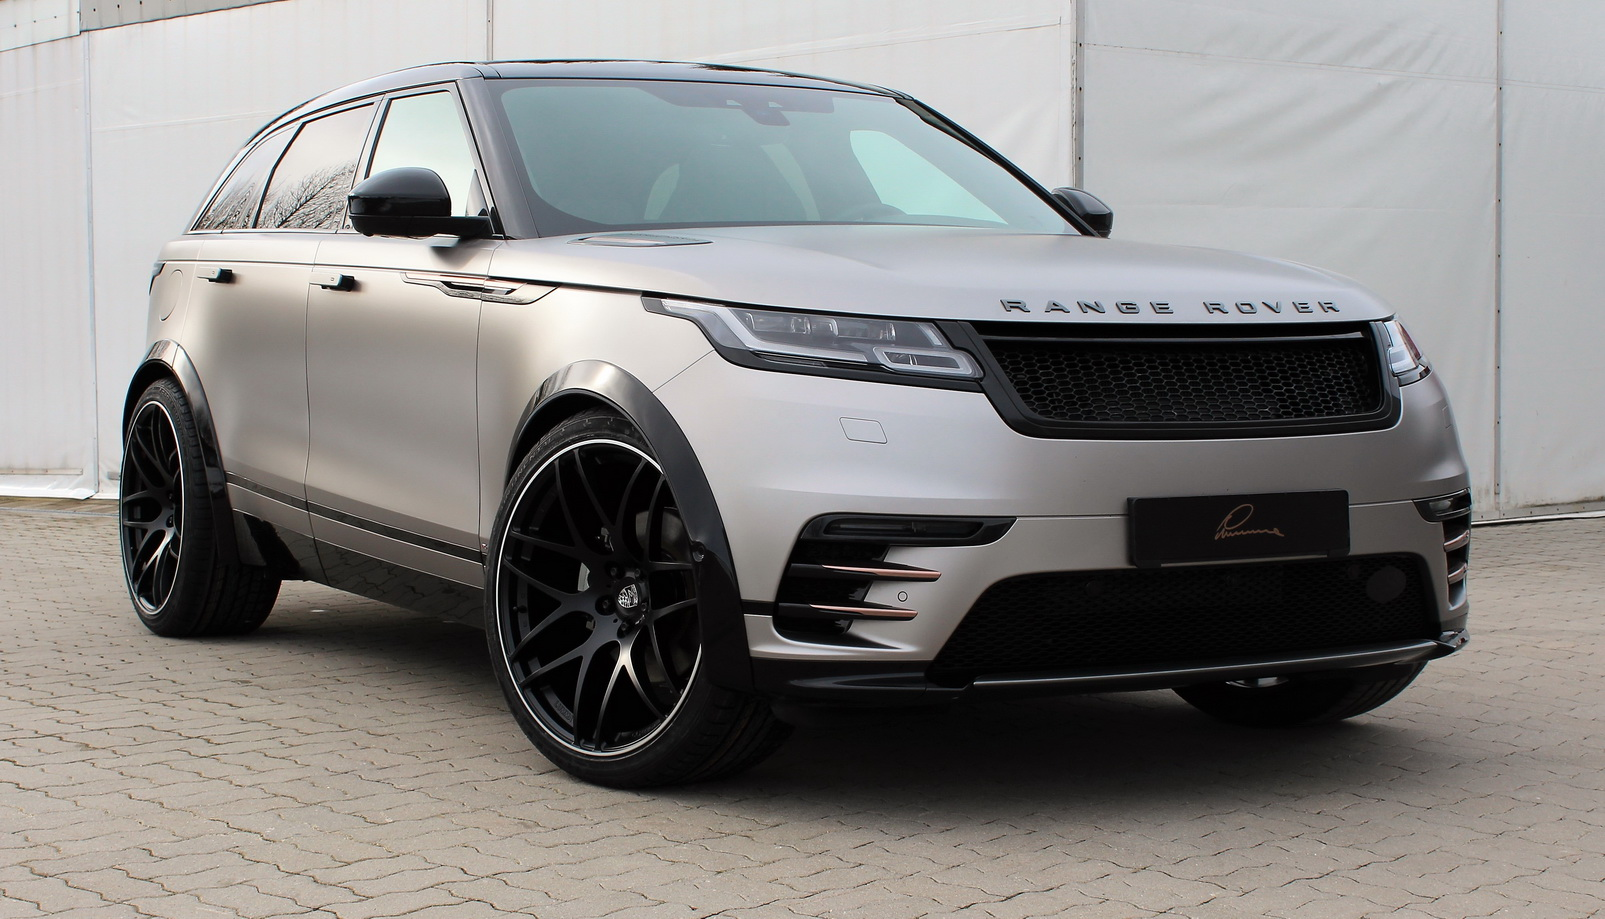 The tuning studio Lumma Design has recently revealed a major visual overhaul for the latest Range Rover Velar it's been working on for some time